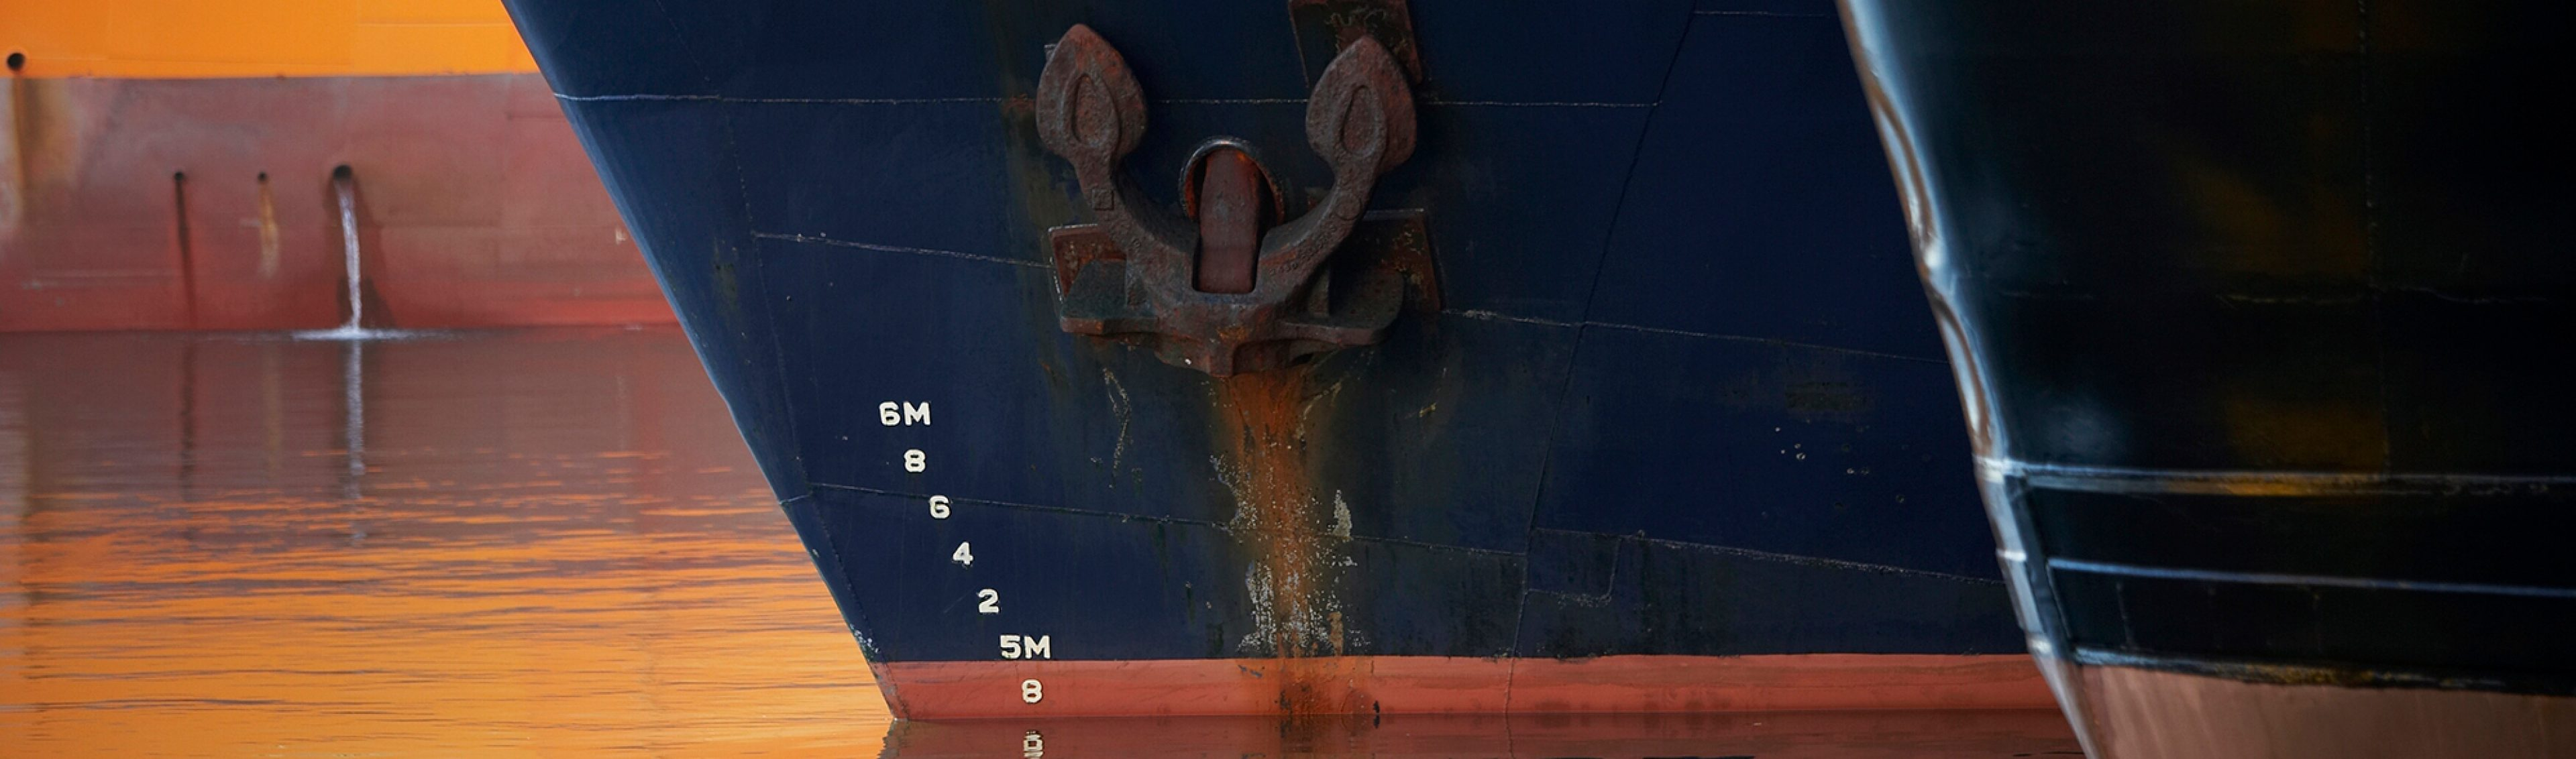 A supply vessel's bow and anchor at Aberdeen port, Scotland.